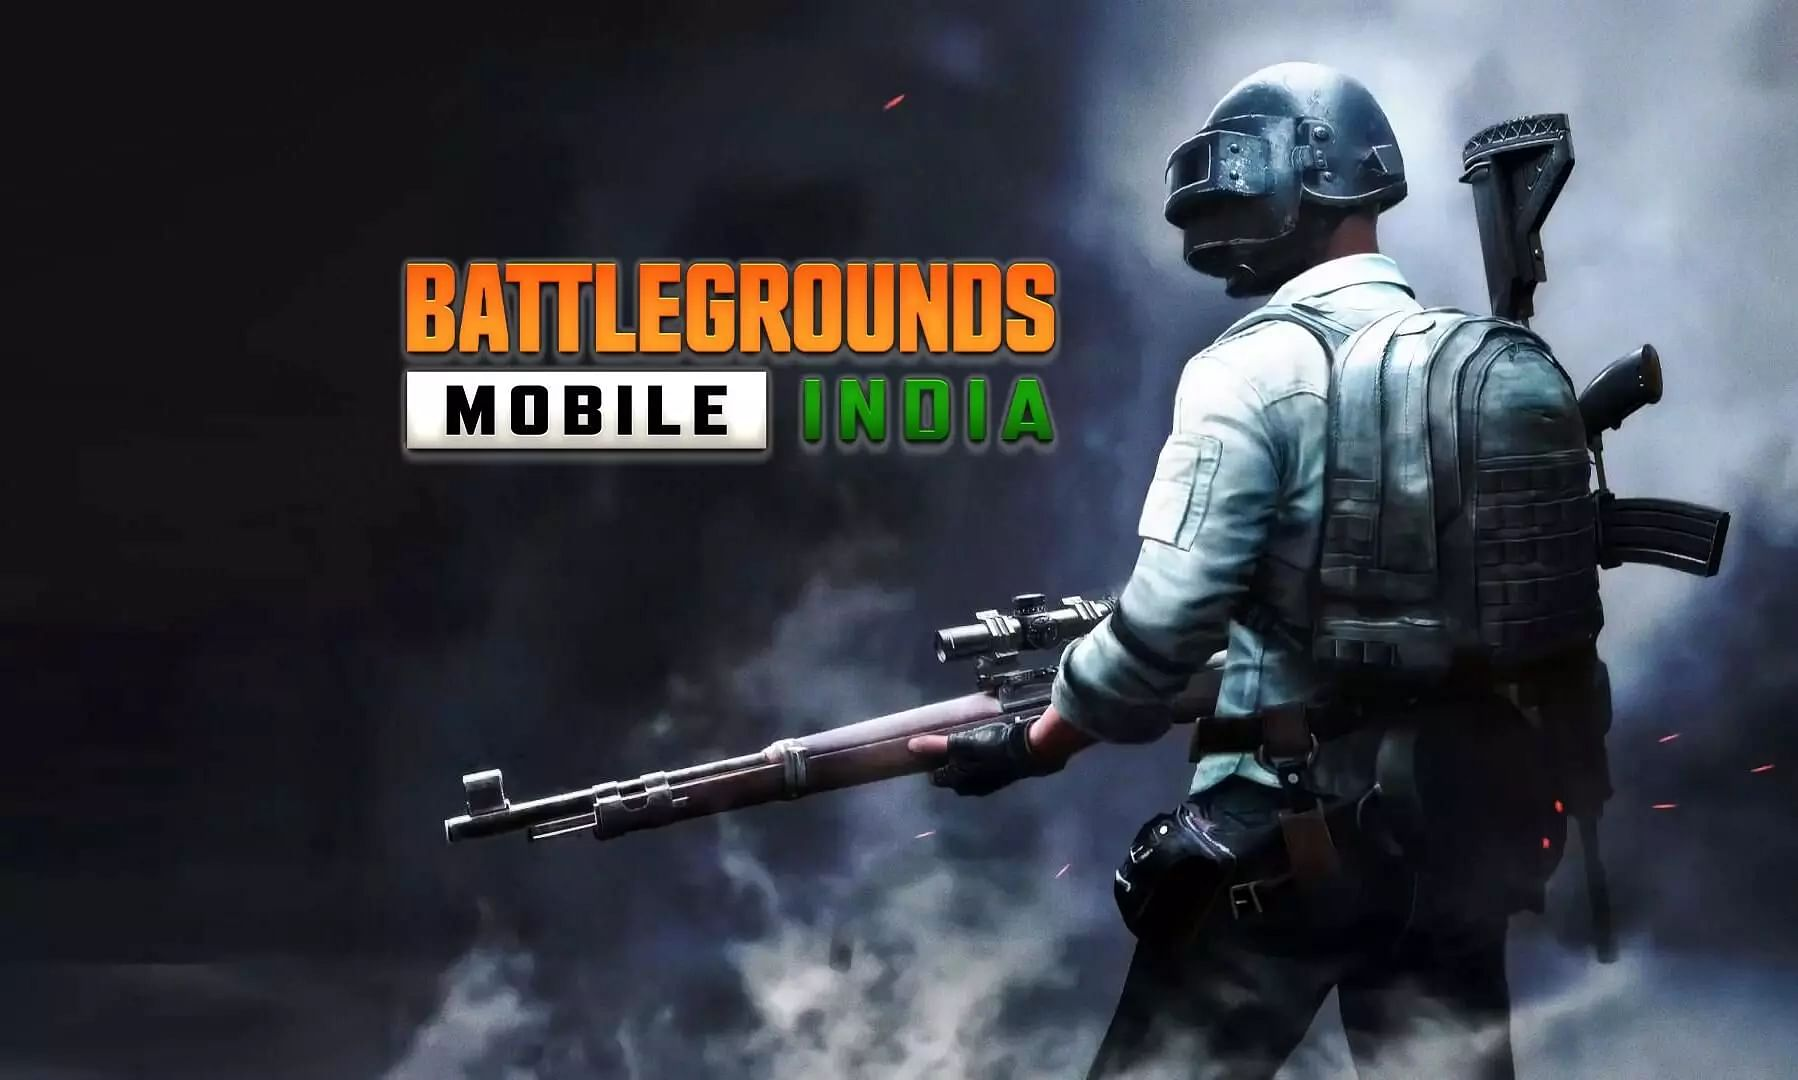 CAIT Writes Letter to Government Demanding the Ban on Battlegrounds Mobile India